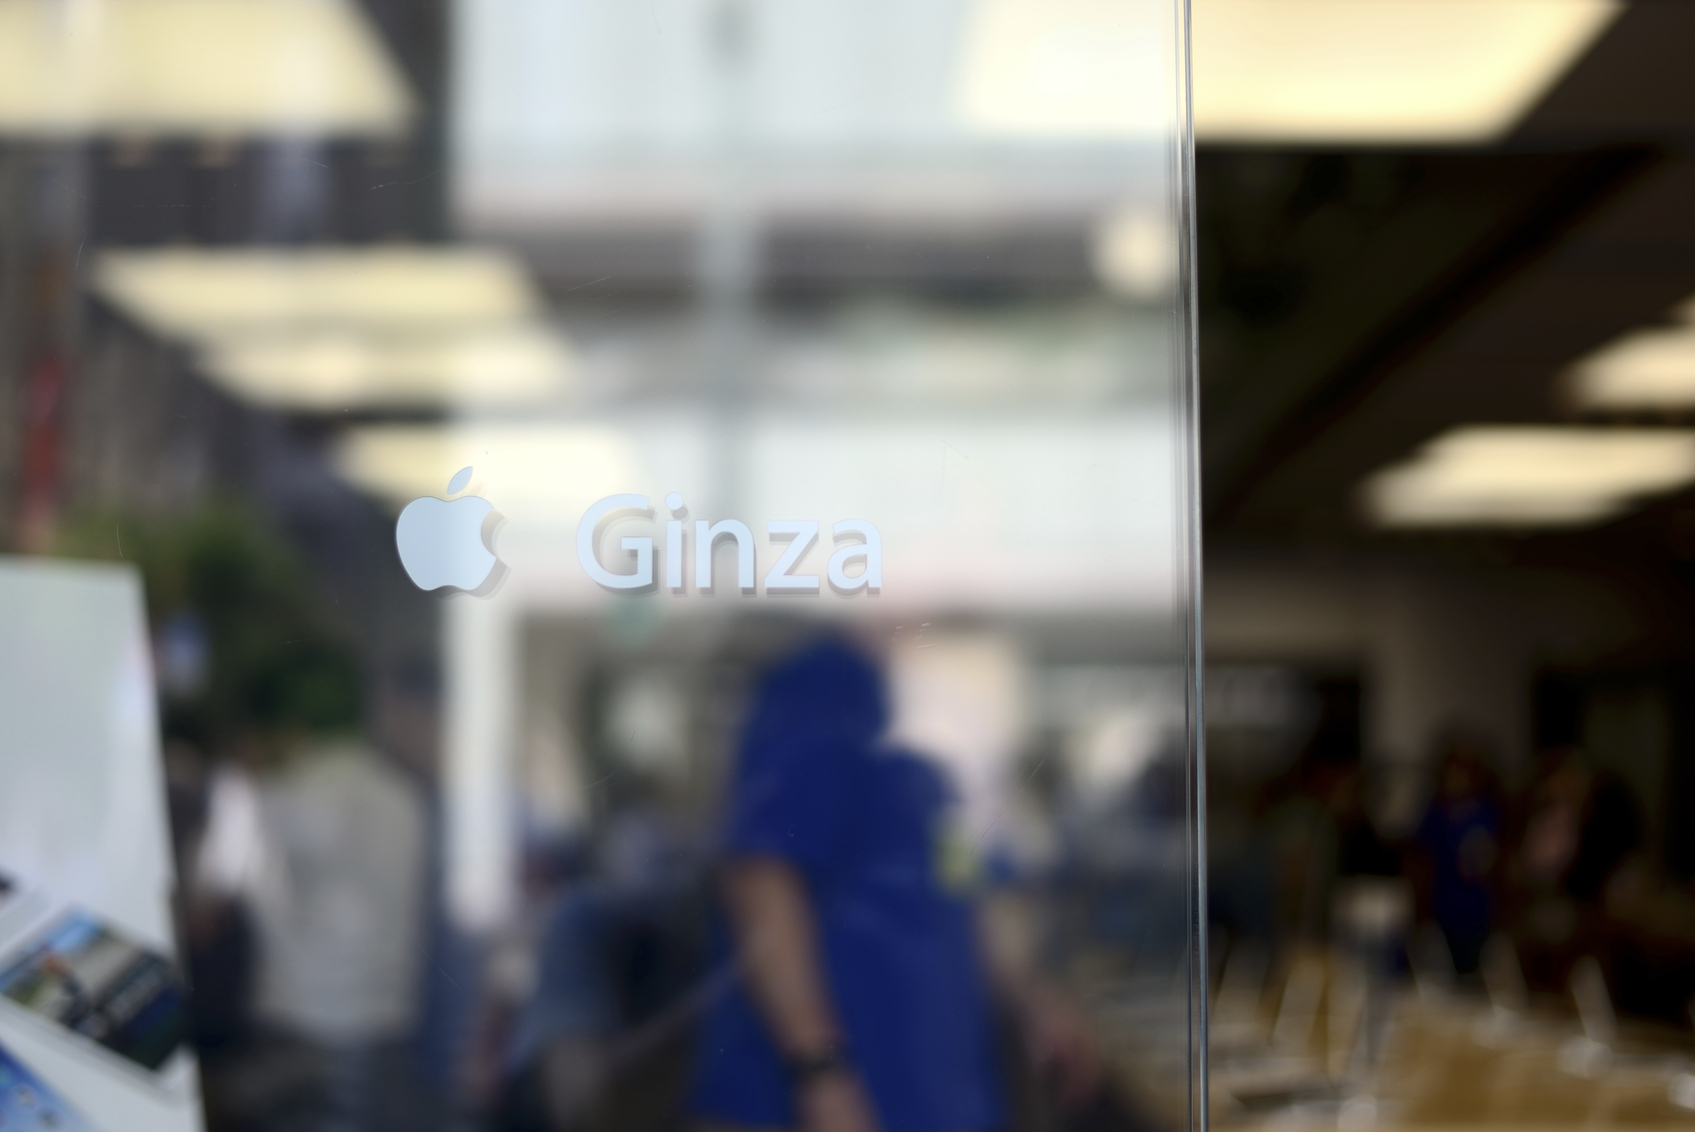 Tokyo, Japan - May 30, 2014: People shopping at an Apple store in the upscale district of Ginza.